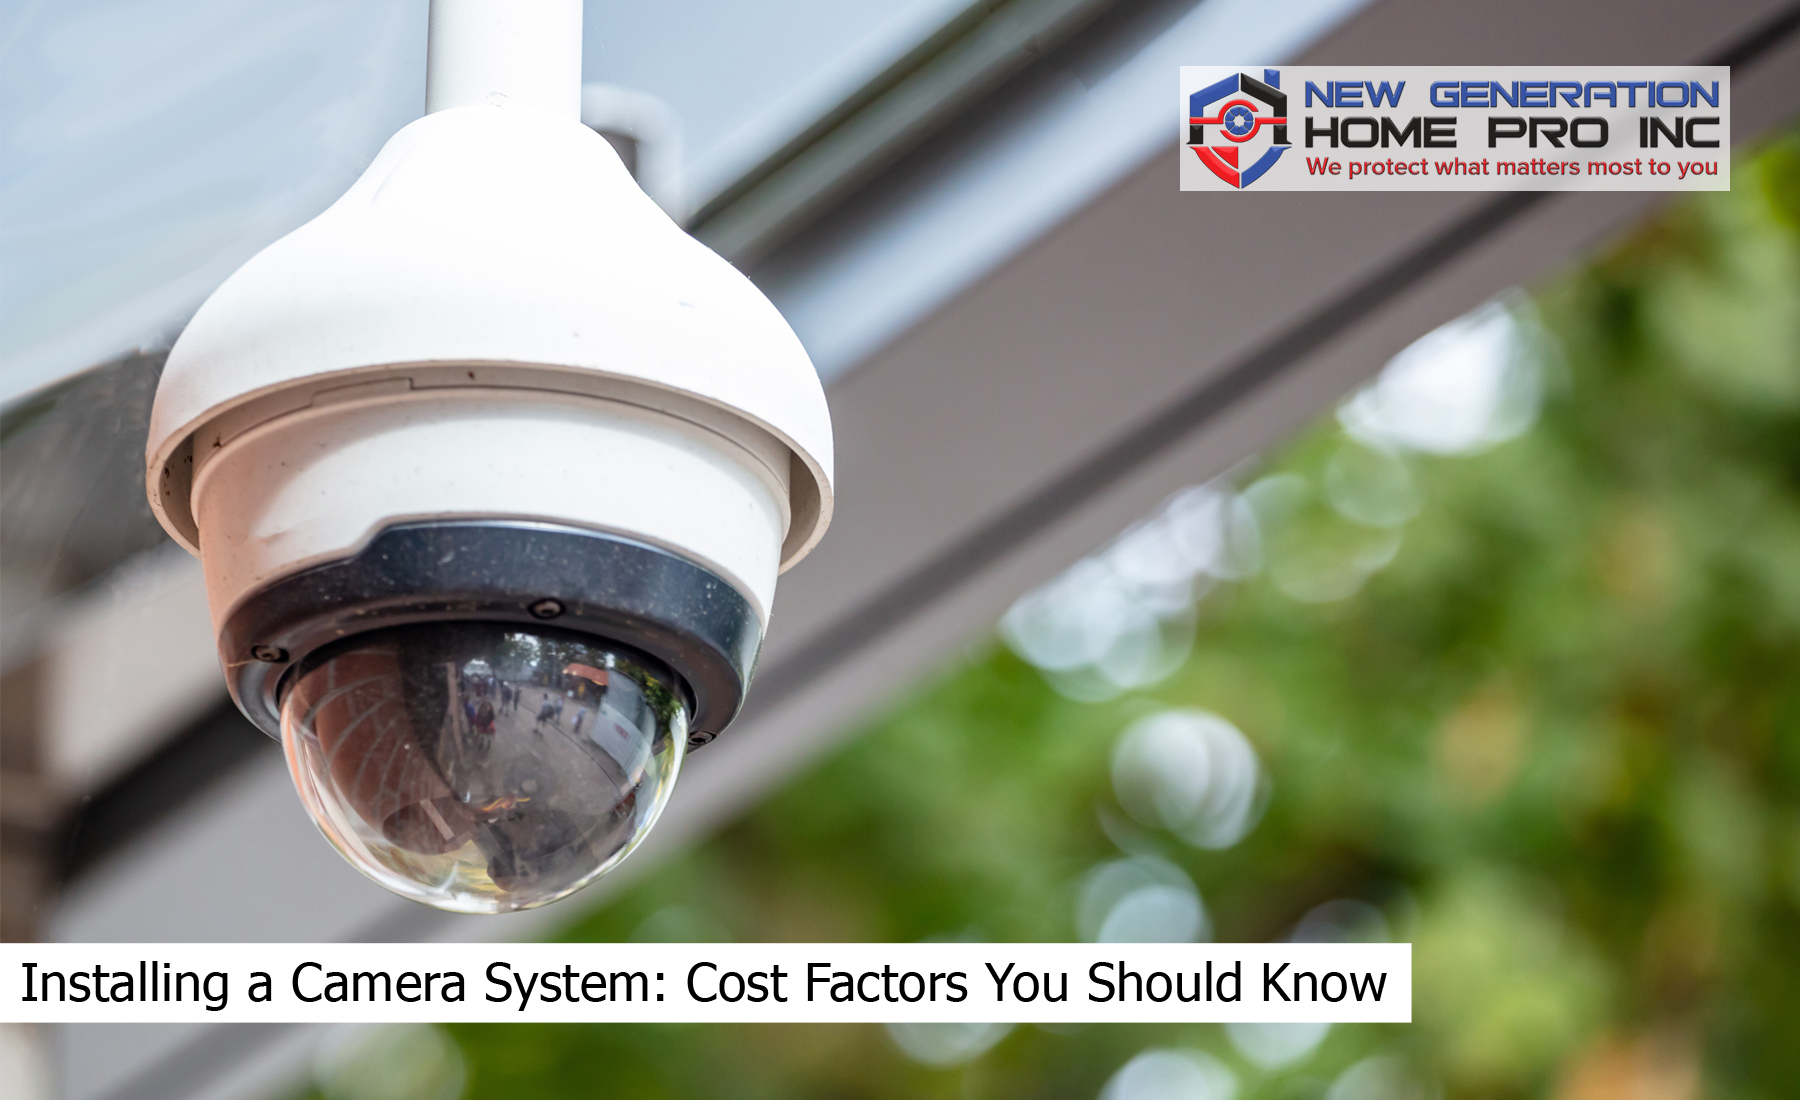 Installing a Camera System: Cost Factors You Should Know